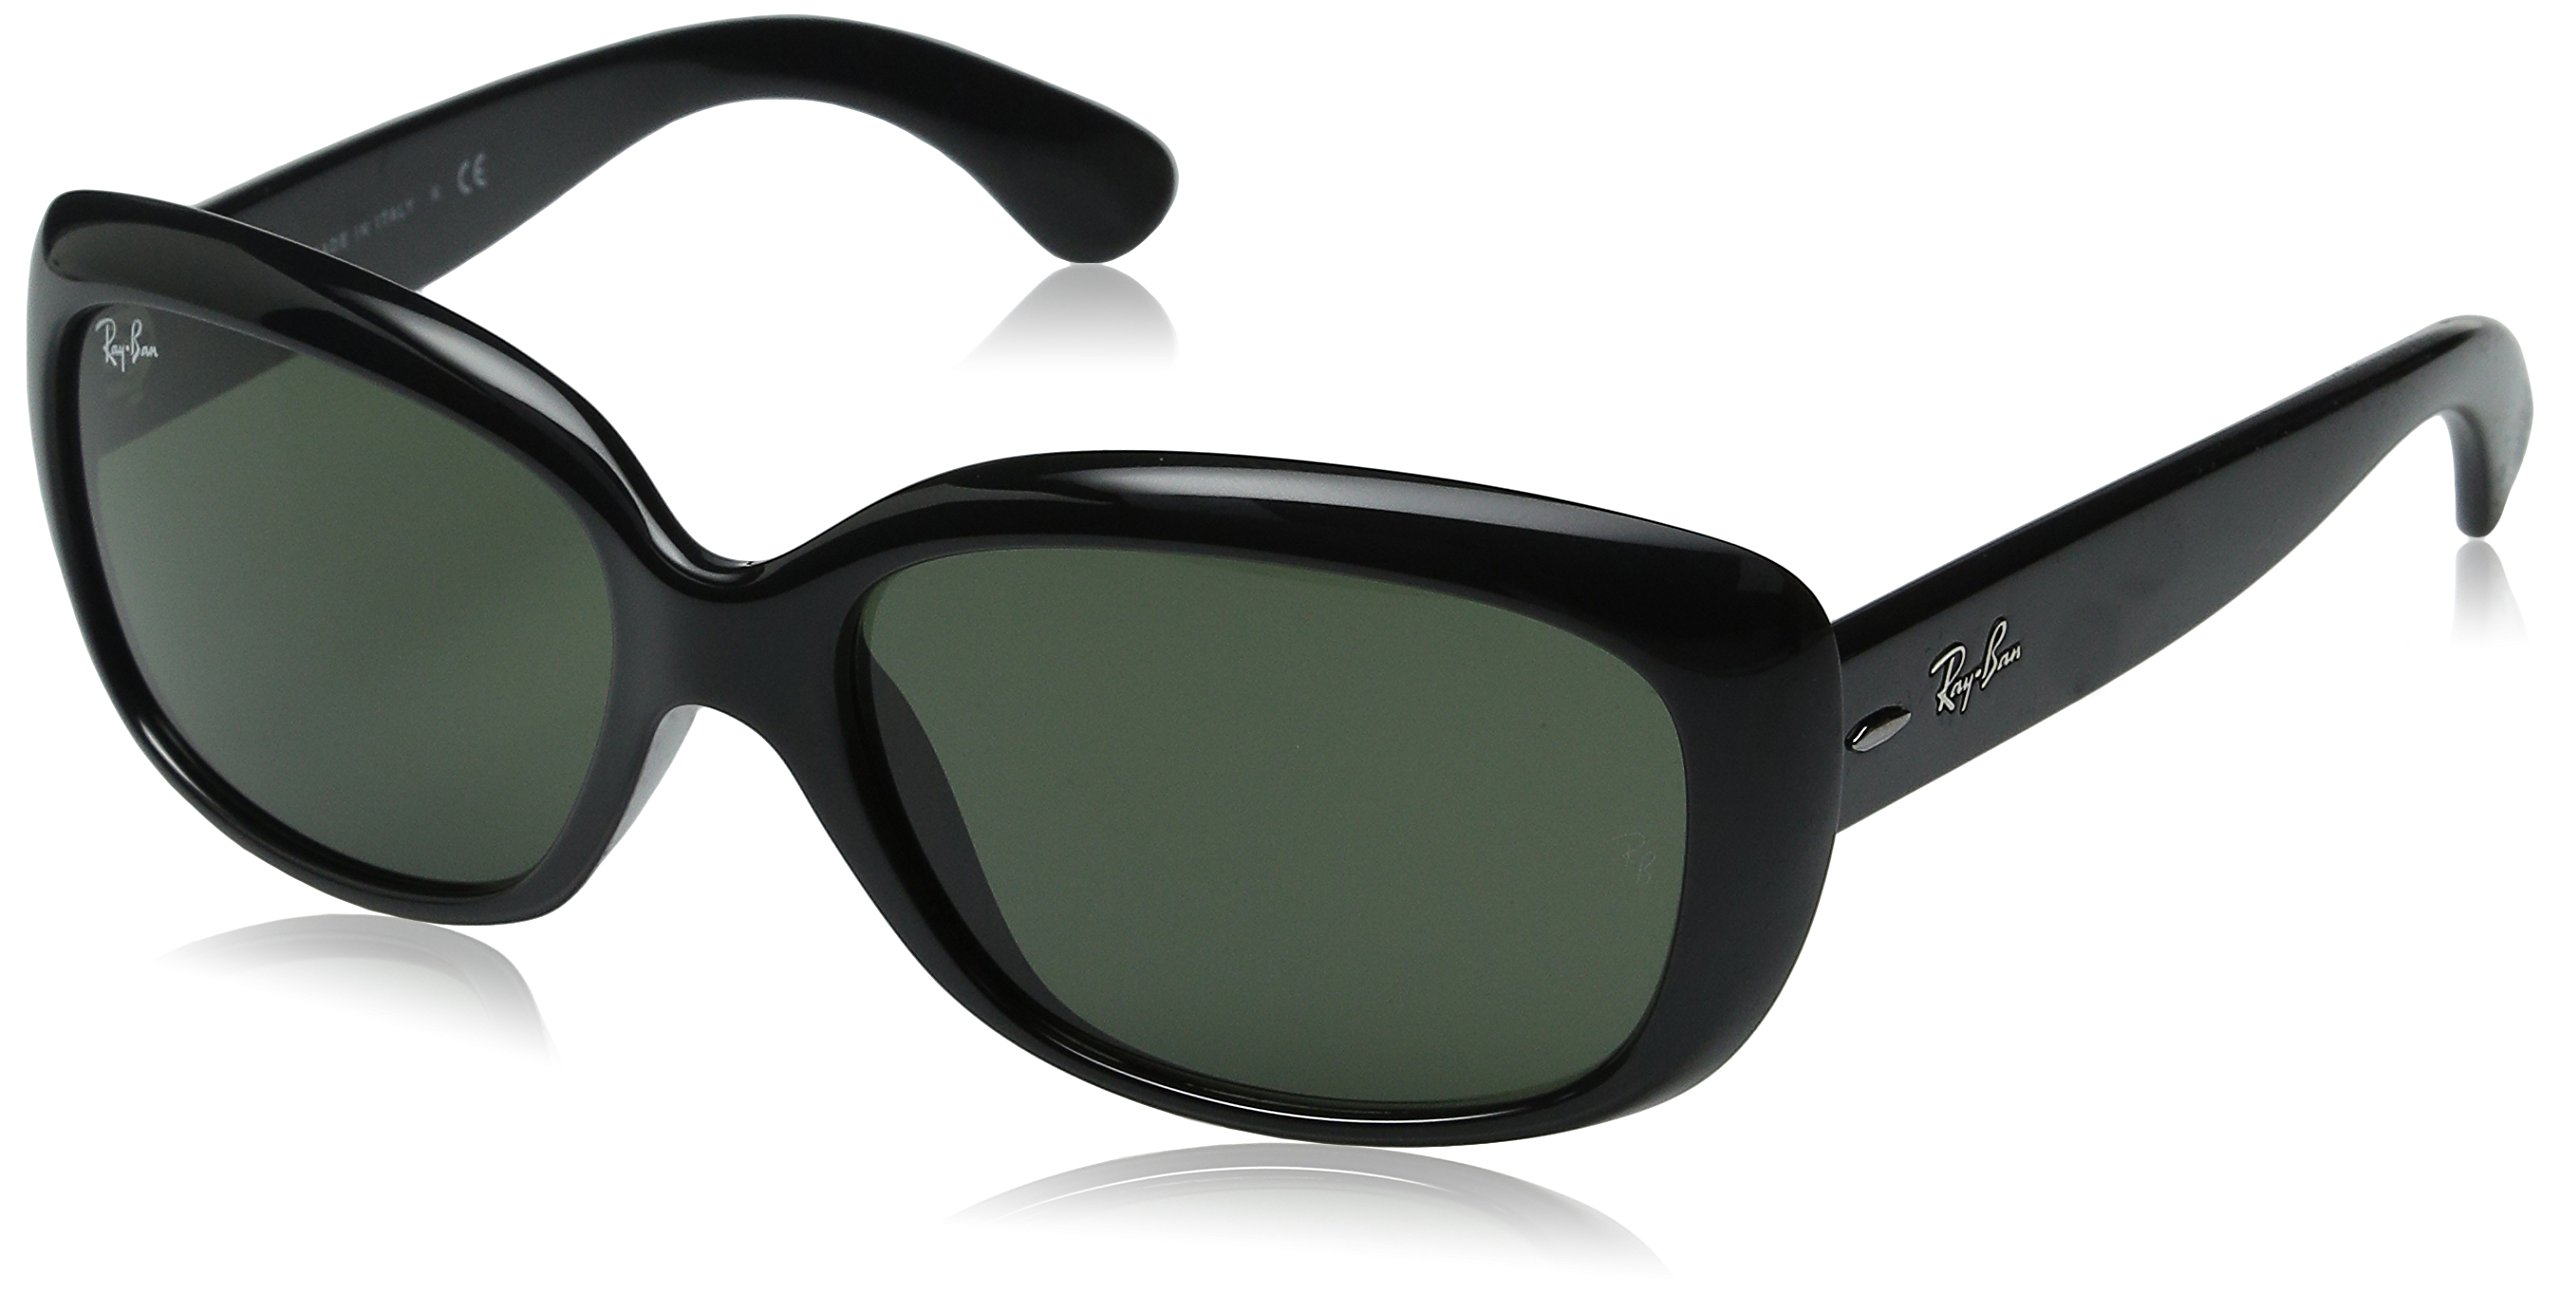 Ray-Ban Womens Jackie Ohh Sunglasses (RB4101) Black/Green Polarized - 58mm by Ray-Ban